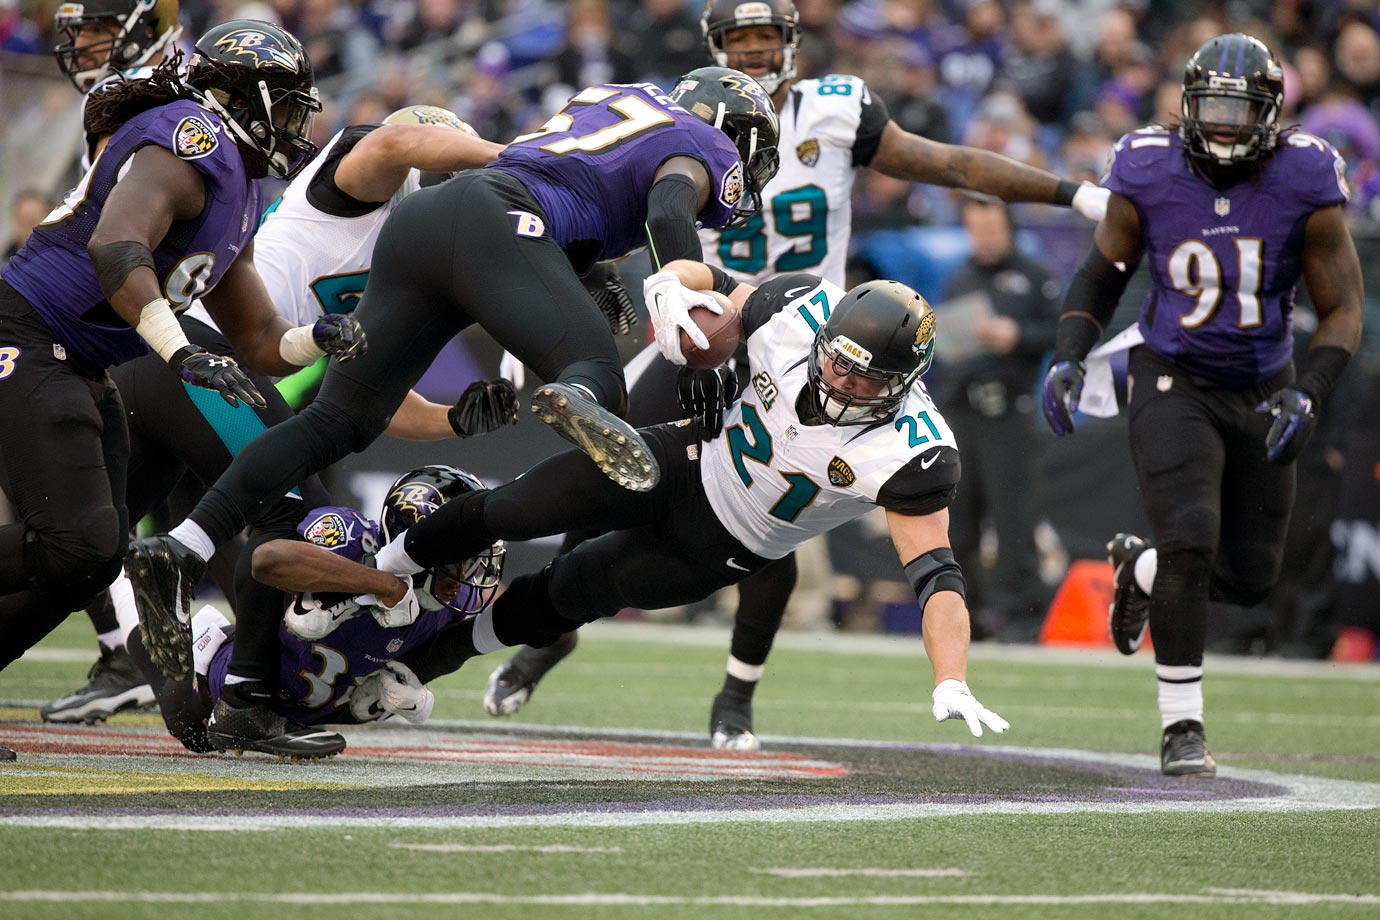 A former second-round pick, Toby Gerhart signed a three-year deal with Jacksonville worth $4.5 million in guaranteed money. But his relatively cheap contract couldn't make-up for an abysmal season for the Jaguars. Gerhart suited up for 14 games and yet seemed invisible on the field. He carried the ball 101 times for a paltry 3.2 yards per carry, and Jacksonville had one of the worst offenses in the league.